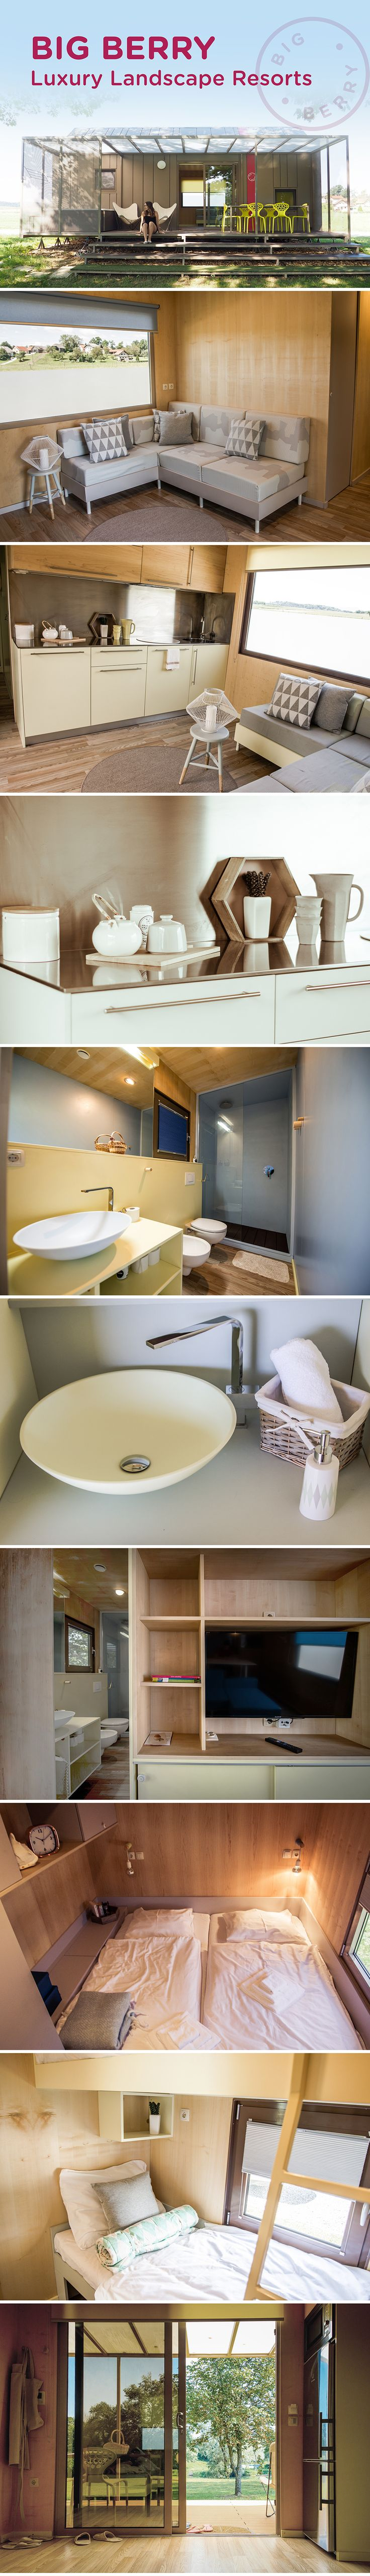 BIG BERRY Luxury Landscape Resorts tiny houses, Slovenia – a new concept of accommodation.